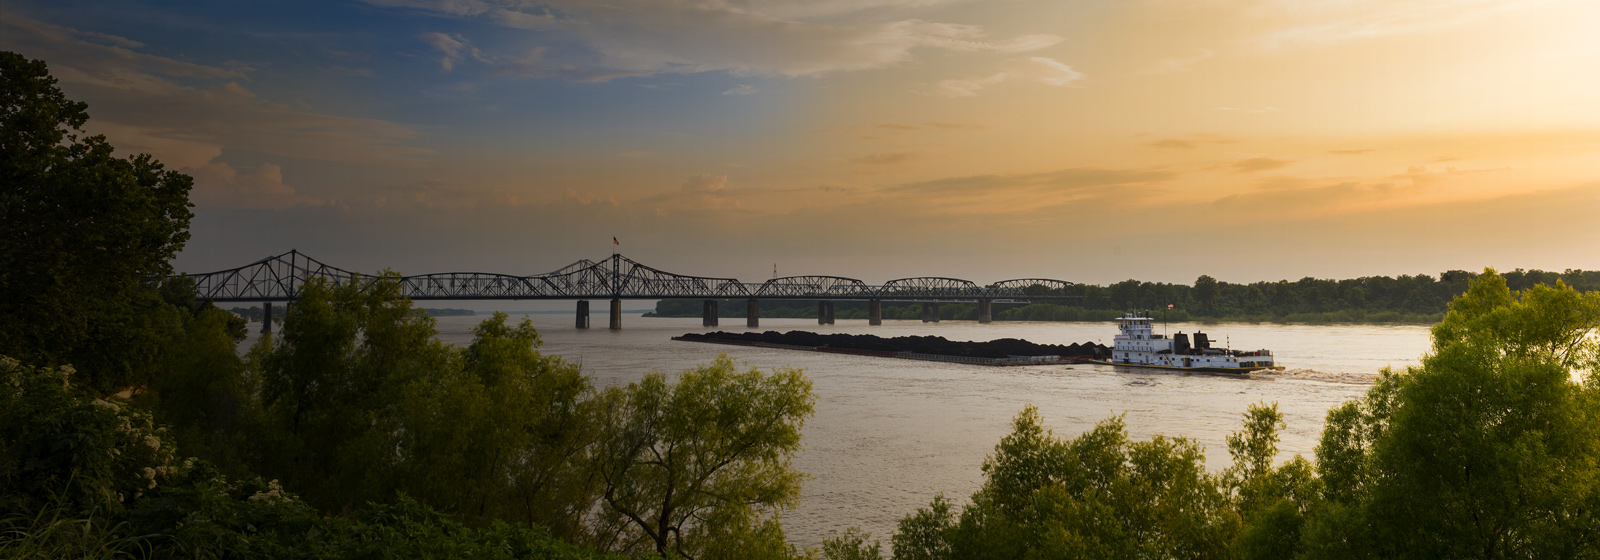 Vicksburg Bridge Mississippi River